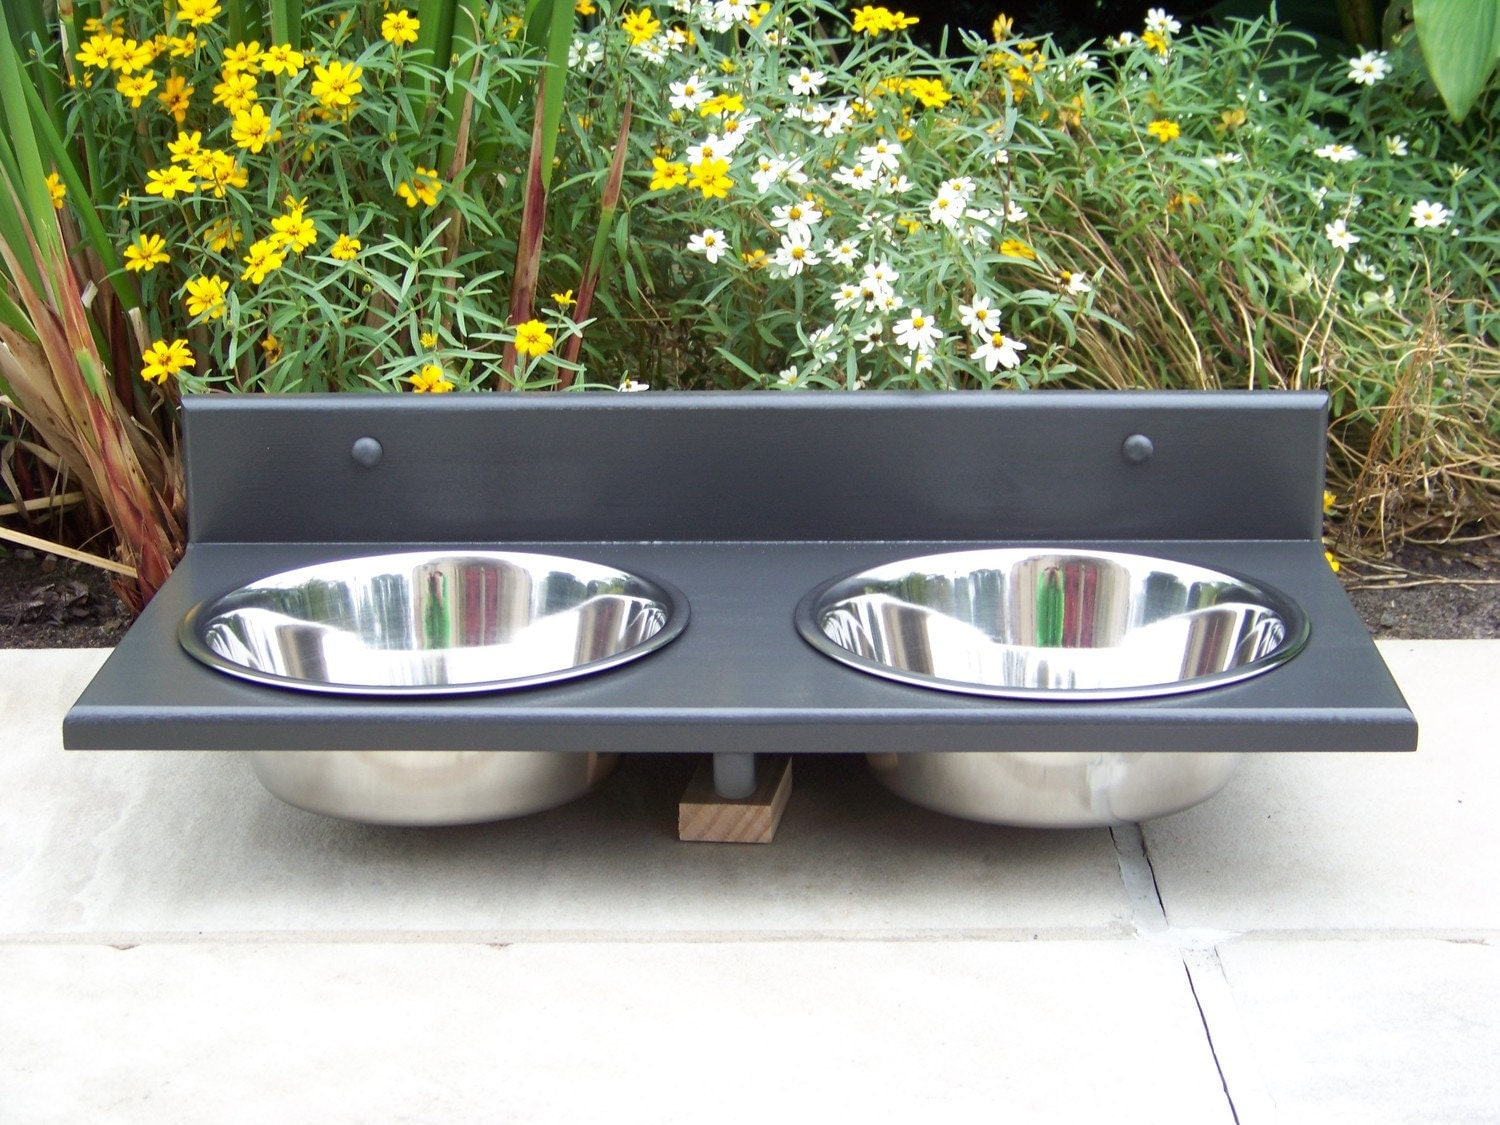 3 quart wall mounted dog bowl feeder custom finished. Black Bedroom Furniture Sets. Home Design Ideas